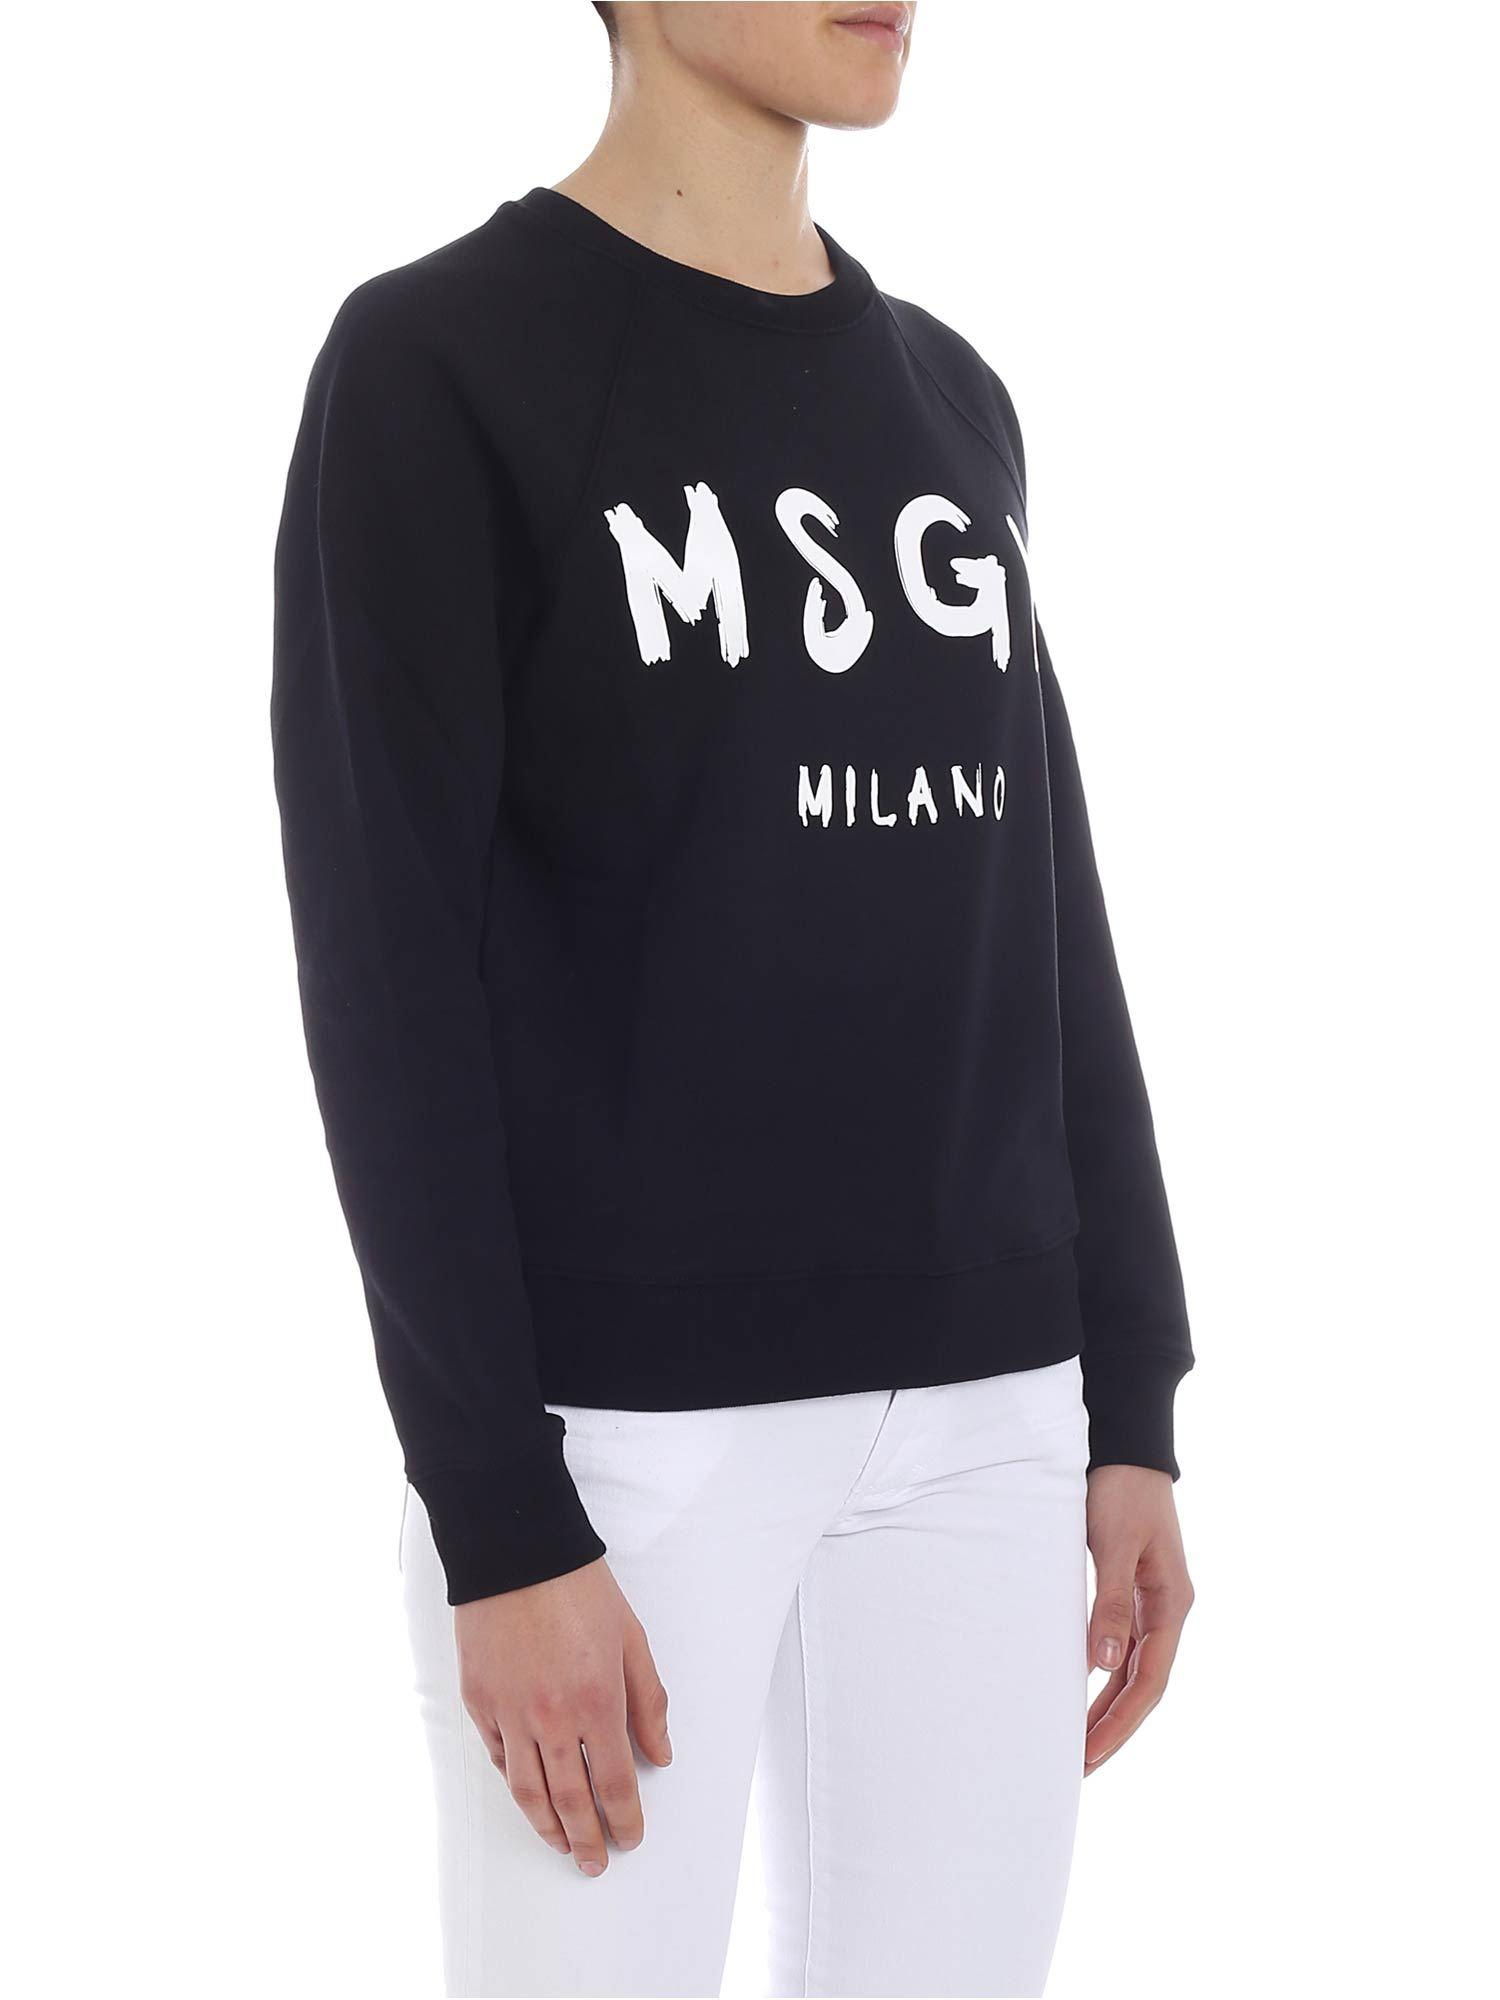 MSGM - Black Crewneck Sweatshirt With Brushed Logo - Lyst. View fullscreen 0d0a6114646